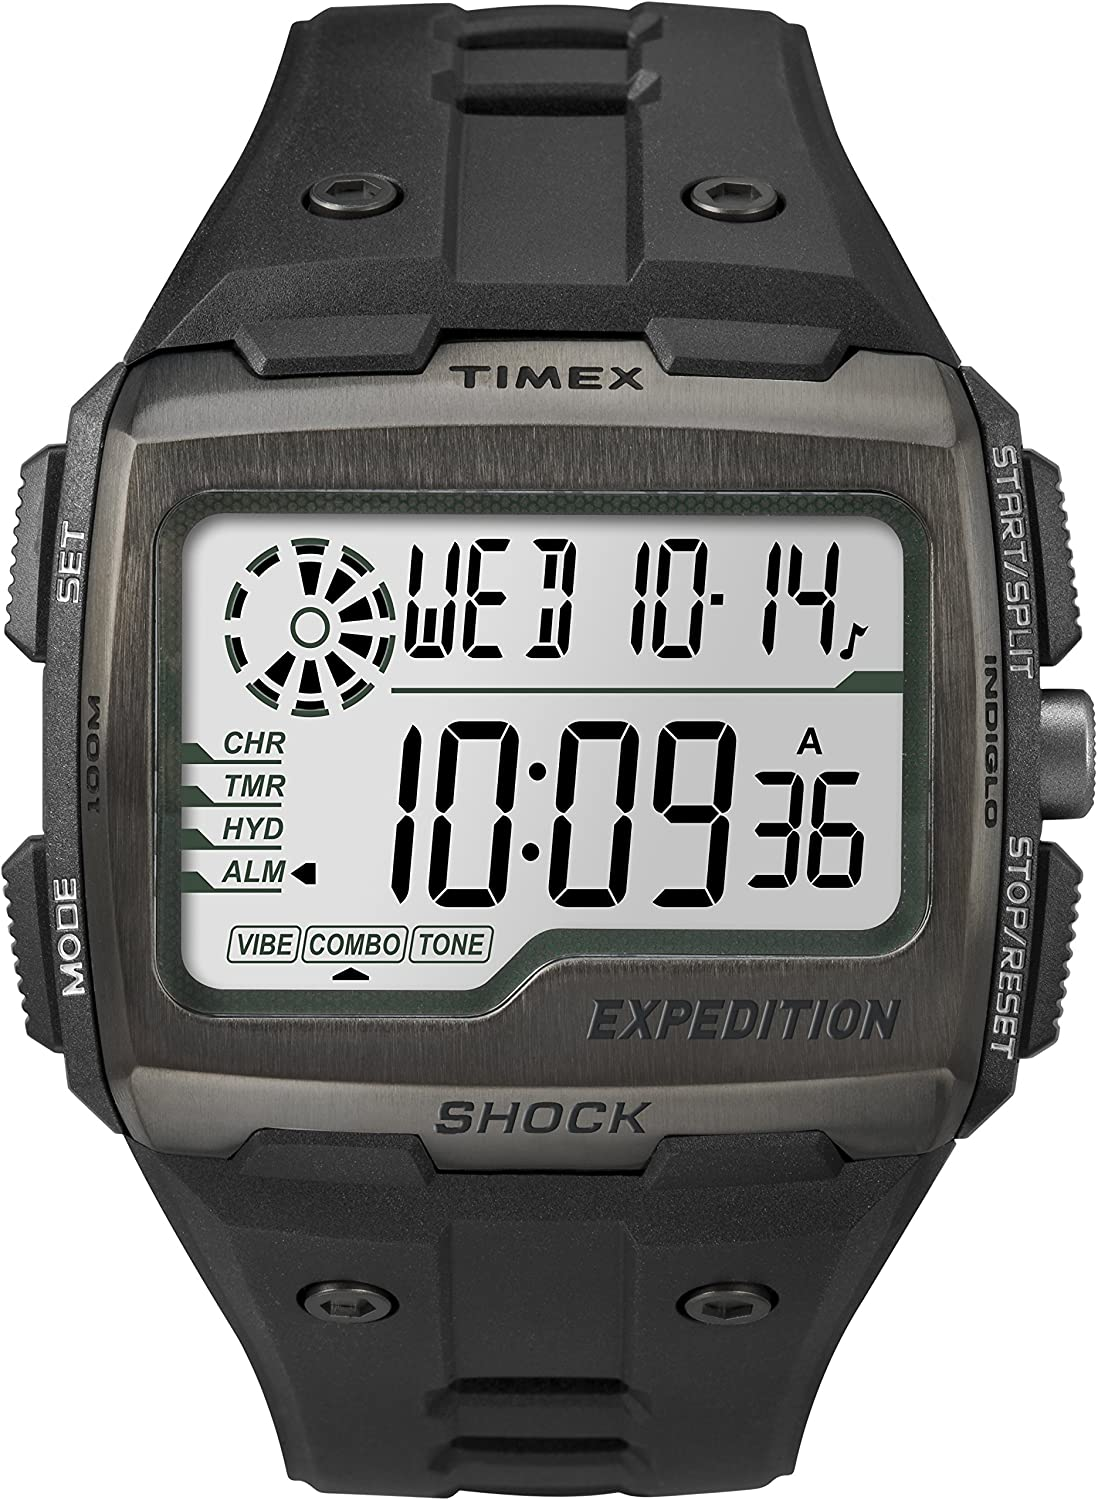 Timex Men Grid Shock LCD Black Dial with Black Resin Strap Watch